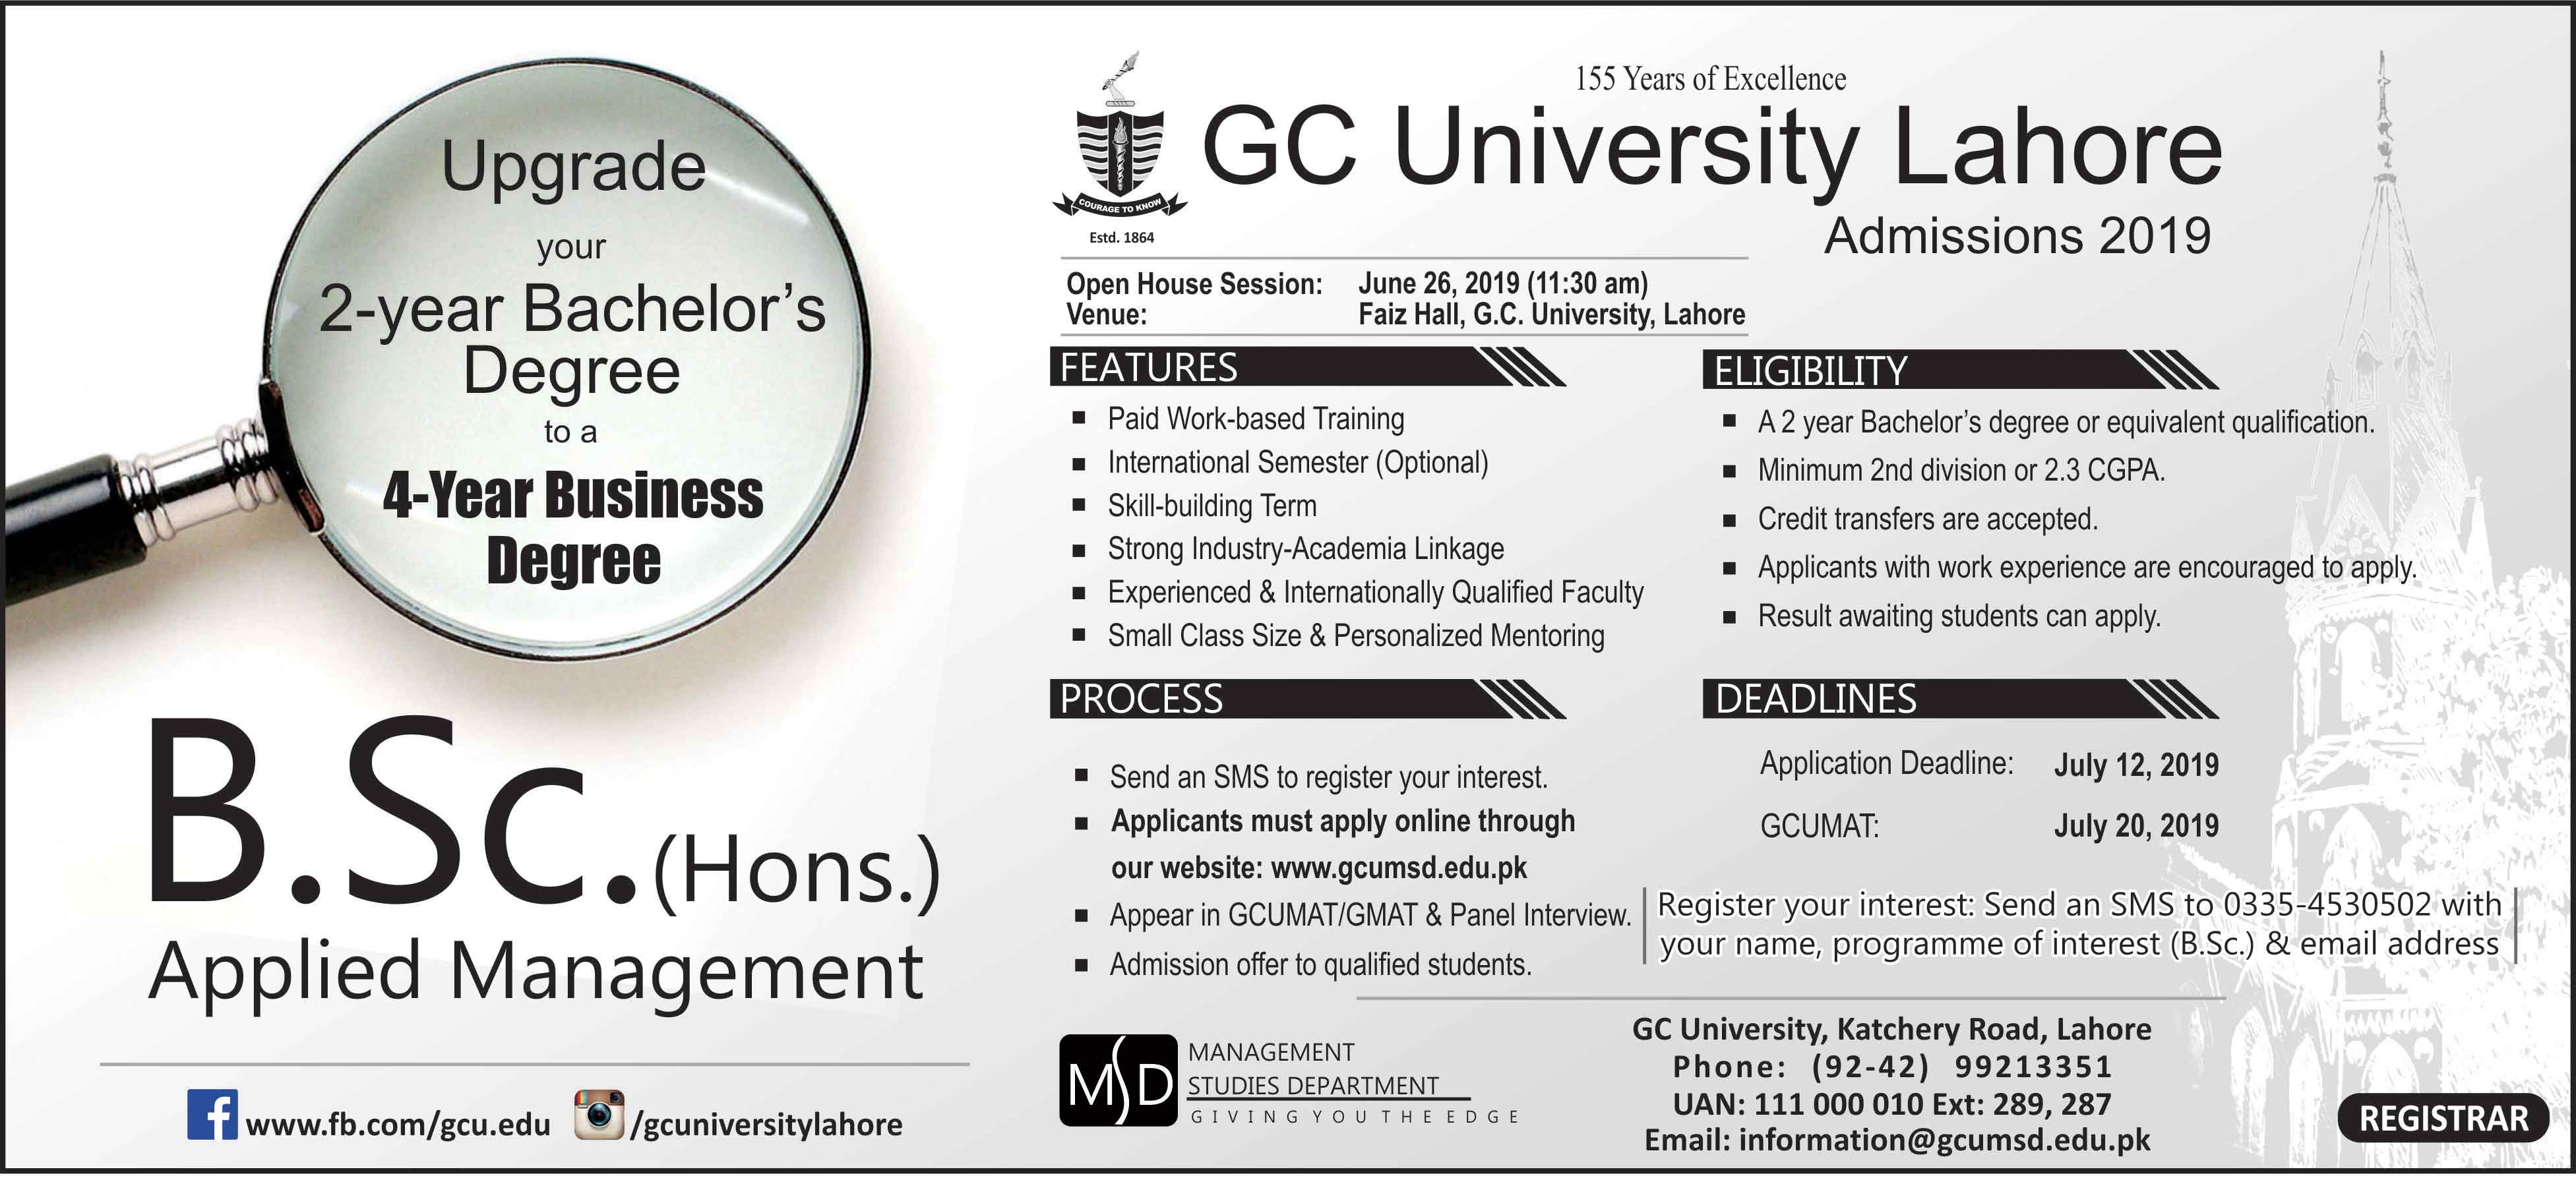 GC University Lahore Admission 2019 Last Date and Fee Structure